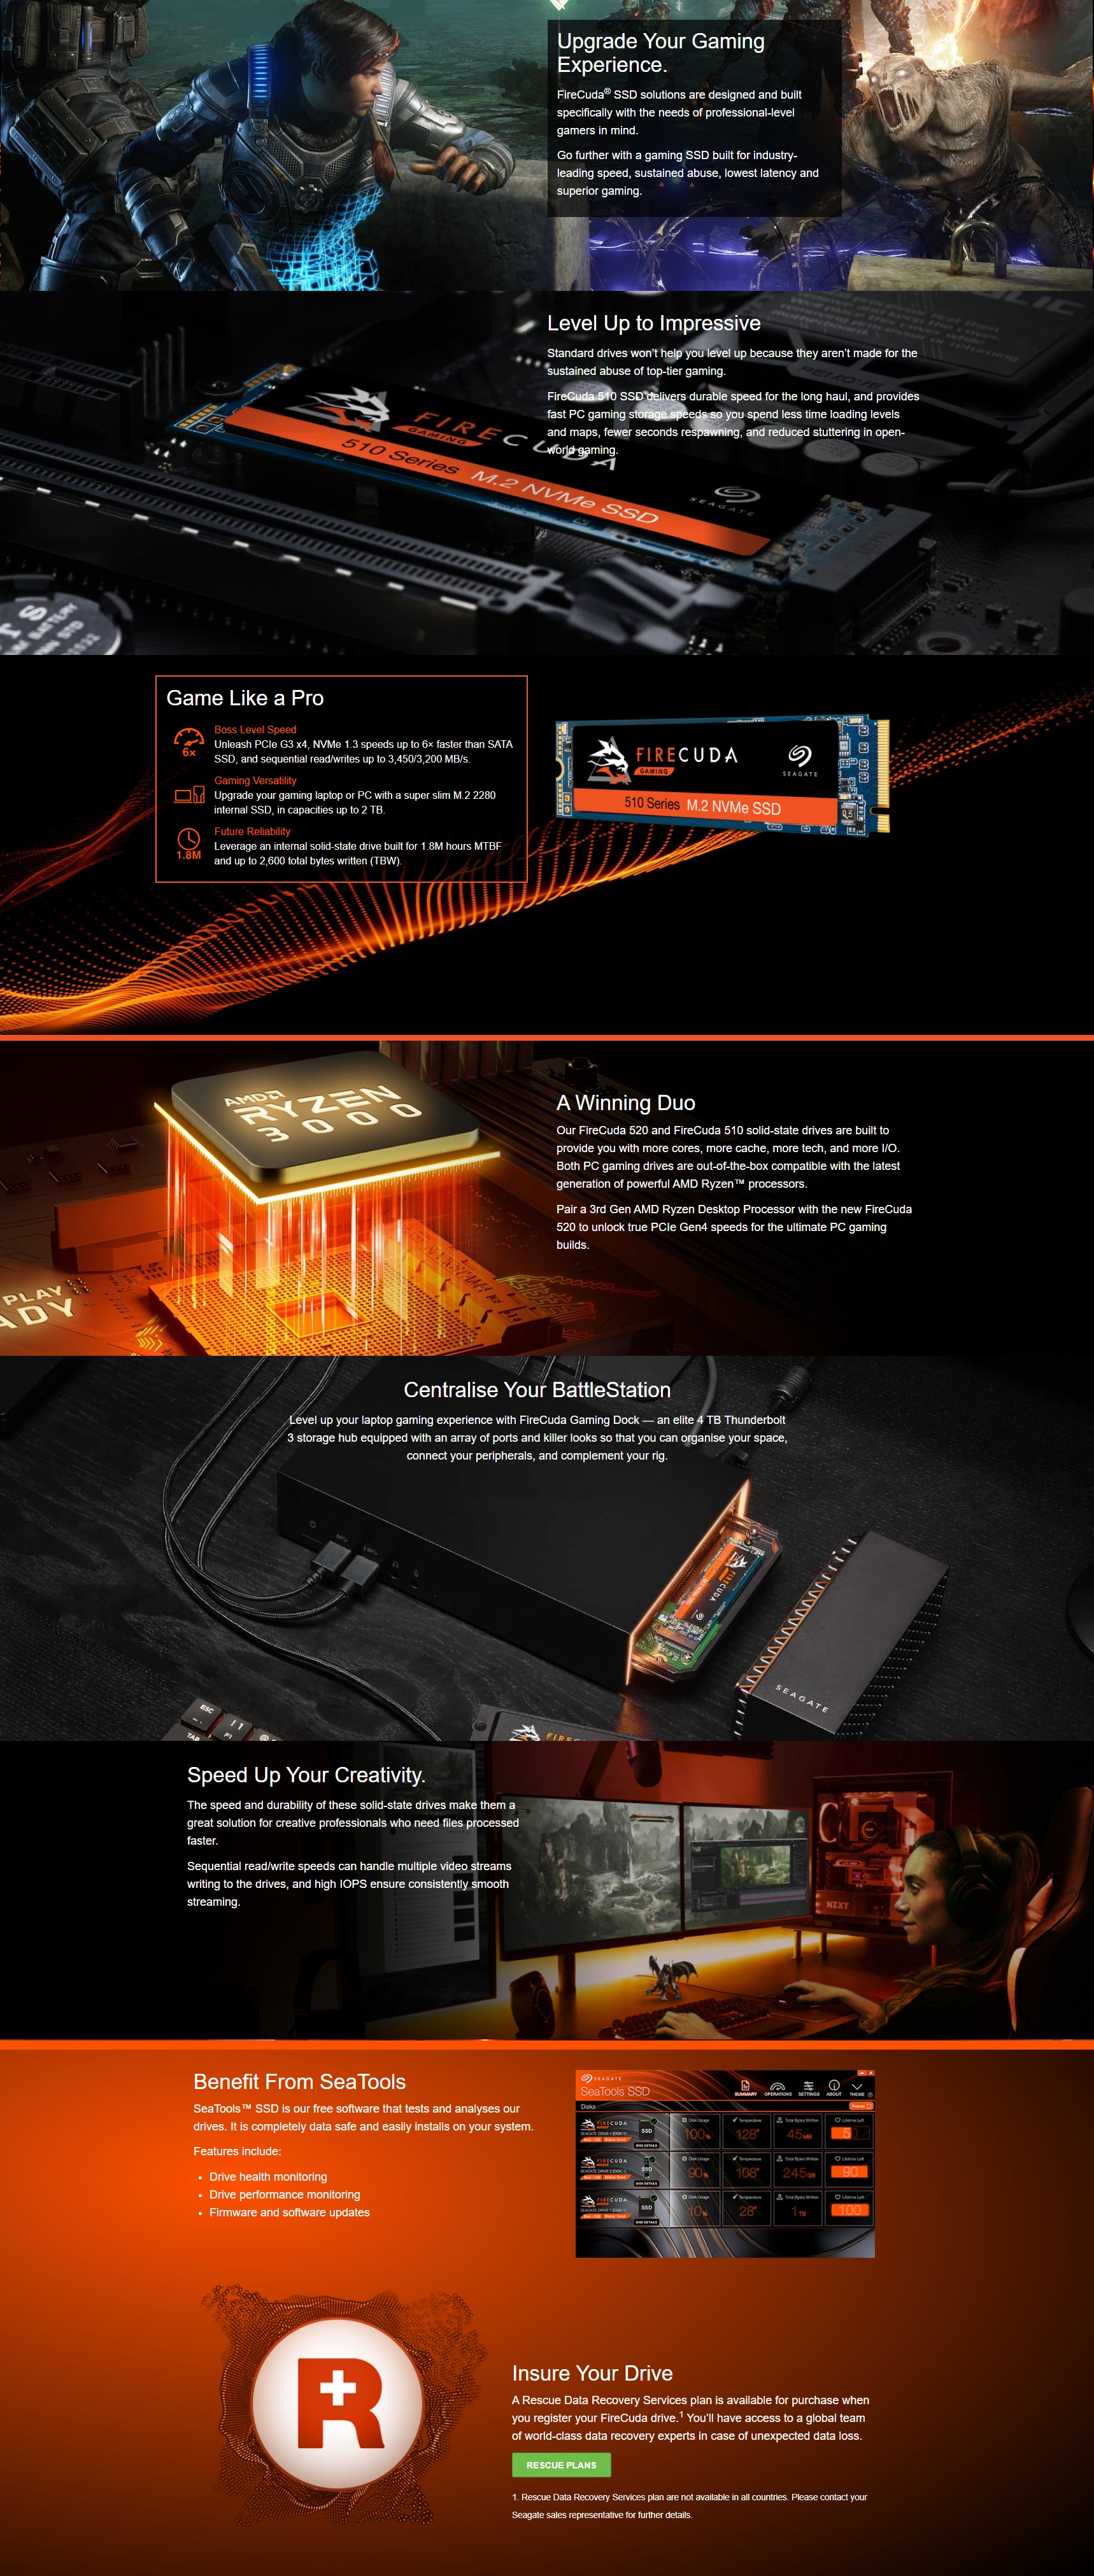 A large marketing image providing additional information about the product Seagate FireCuda 510 500GB NVMe M.2 SSD - Additional alt info not provided